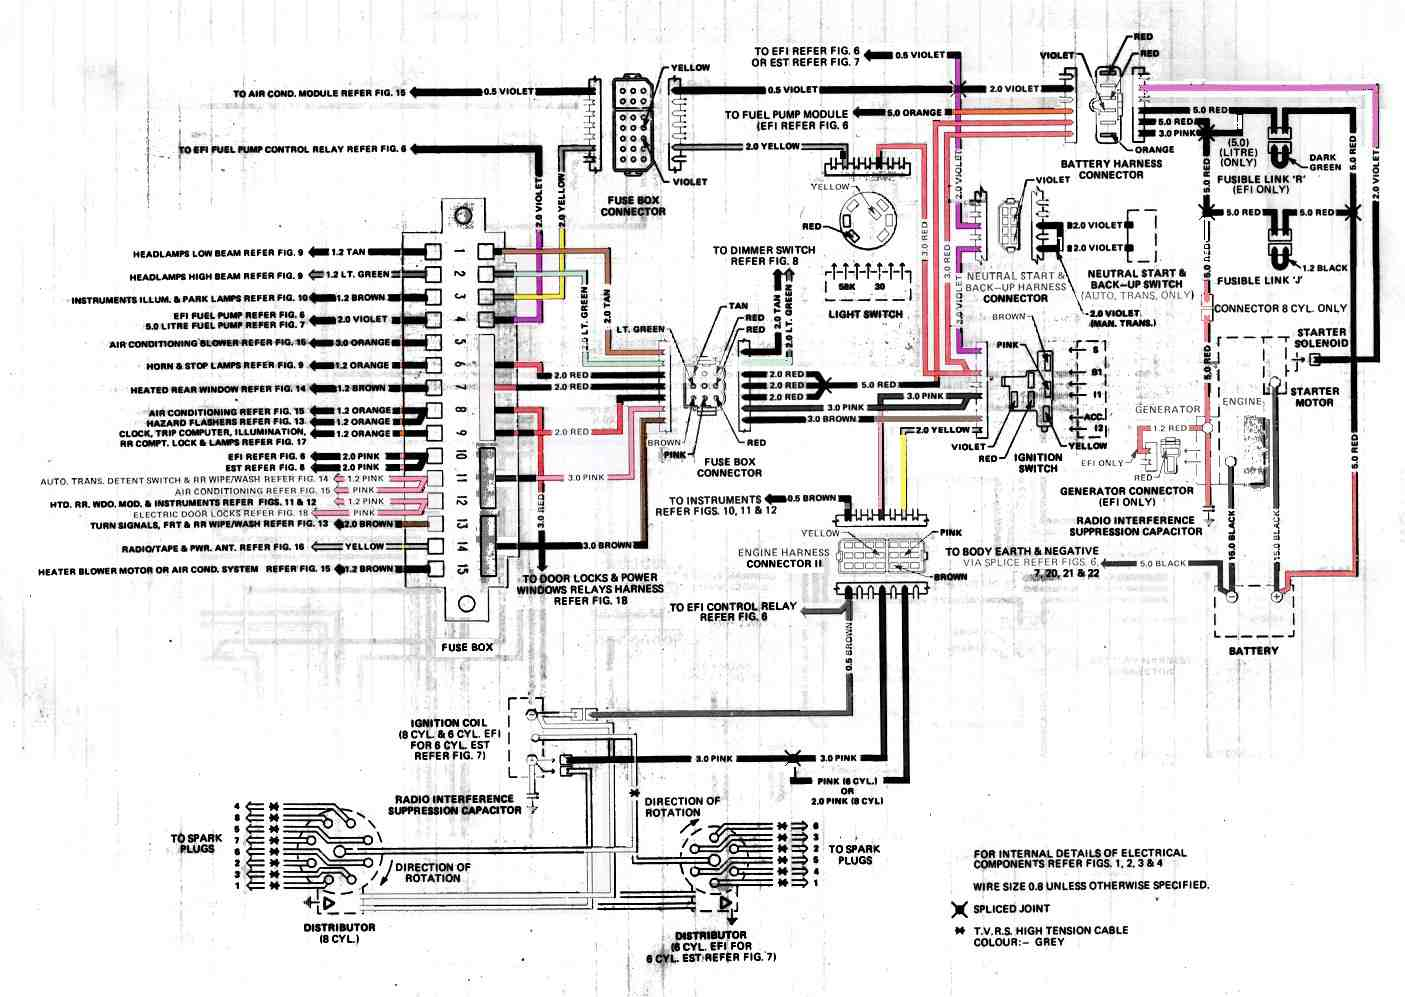 Generator Housing Electrical Diagrams - Trusted Wiring Diagram